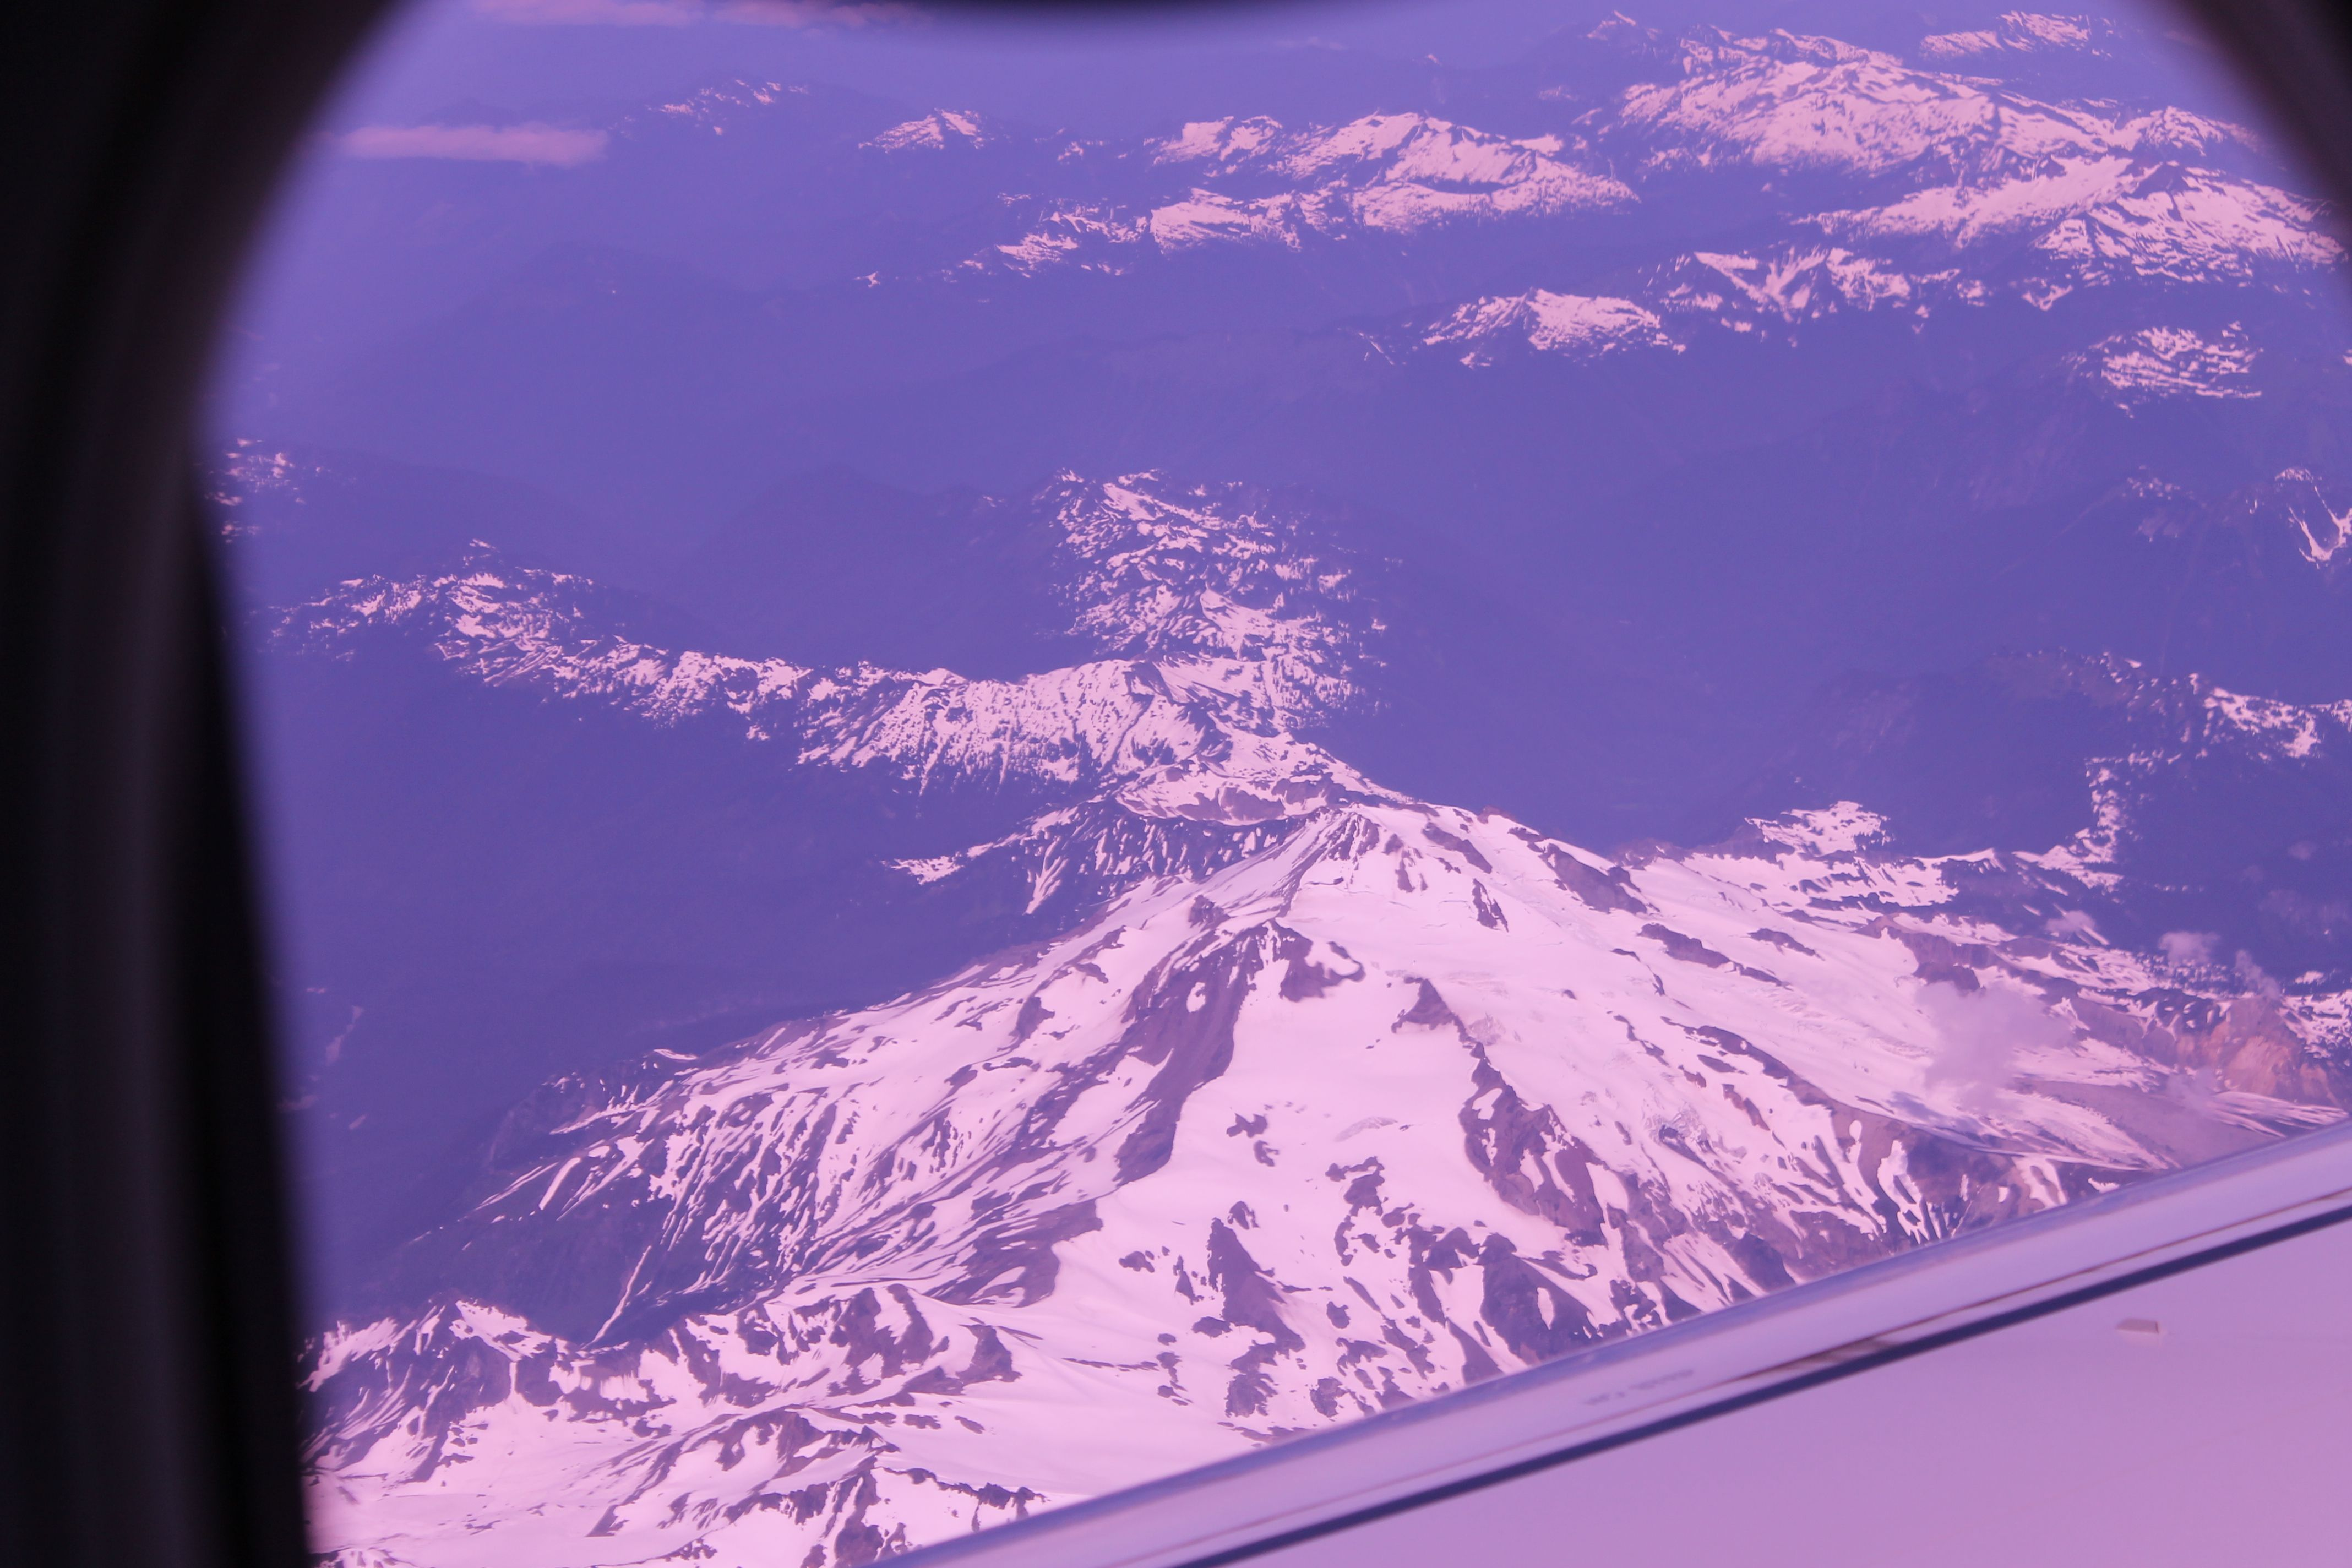 Mt. Rainer from the plane